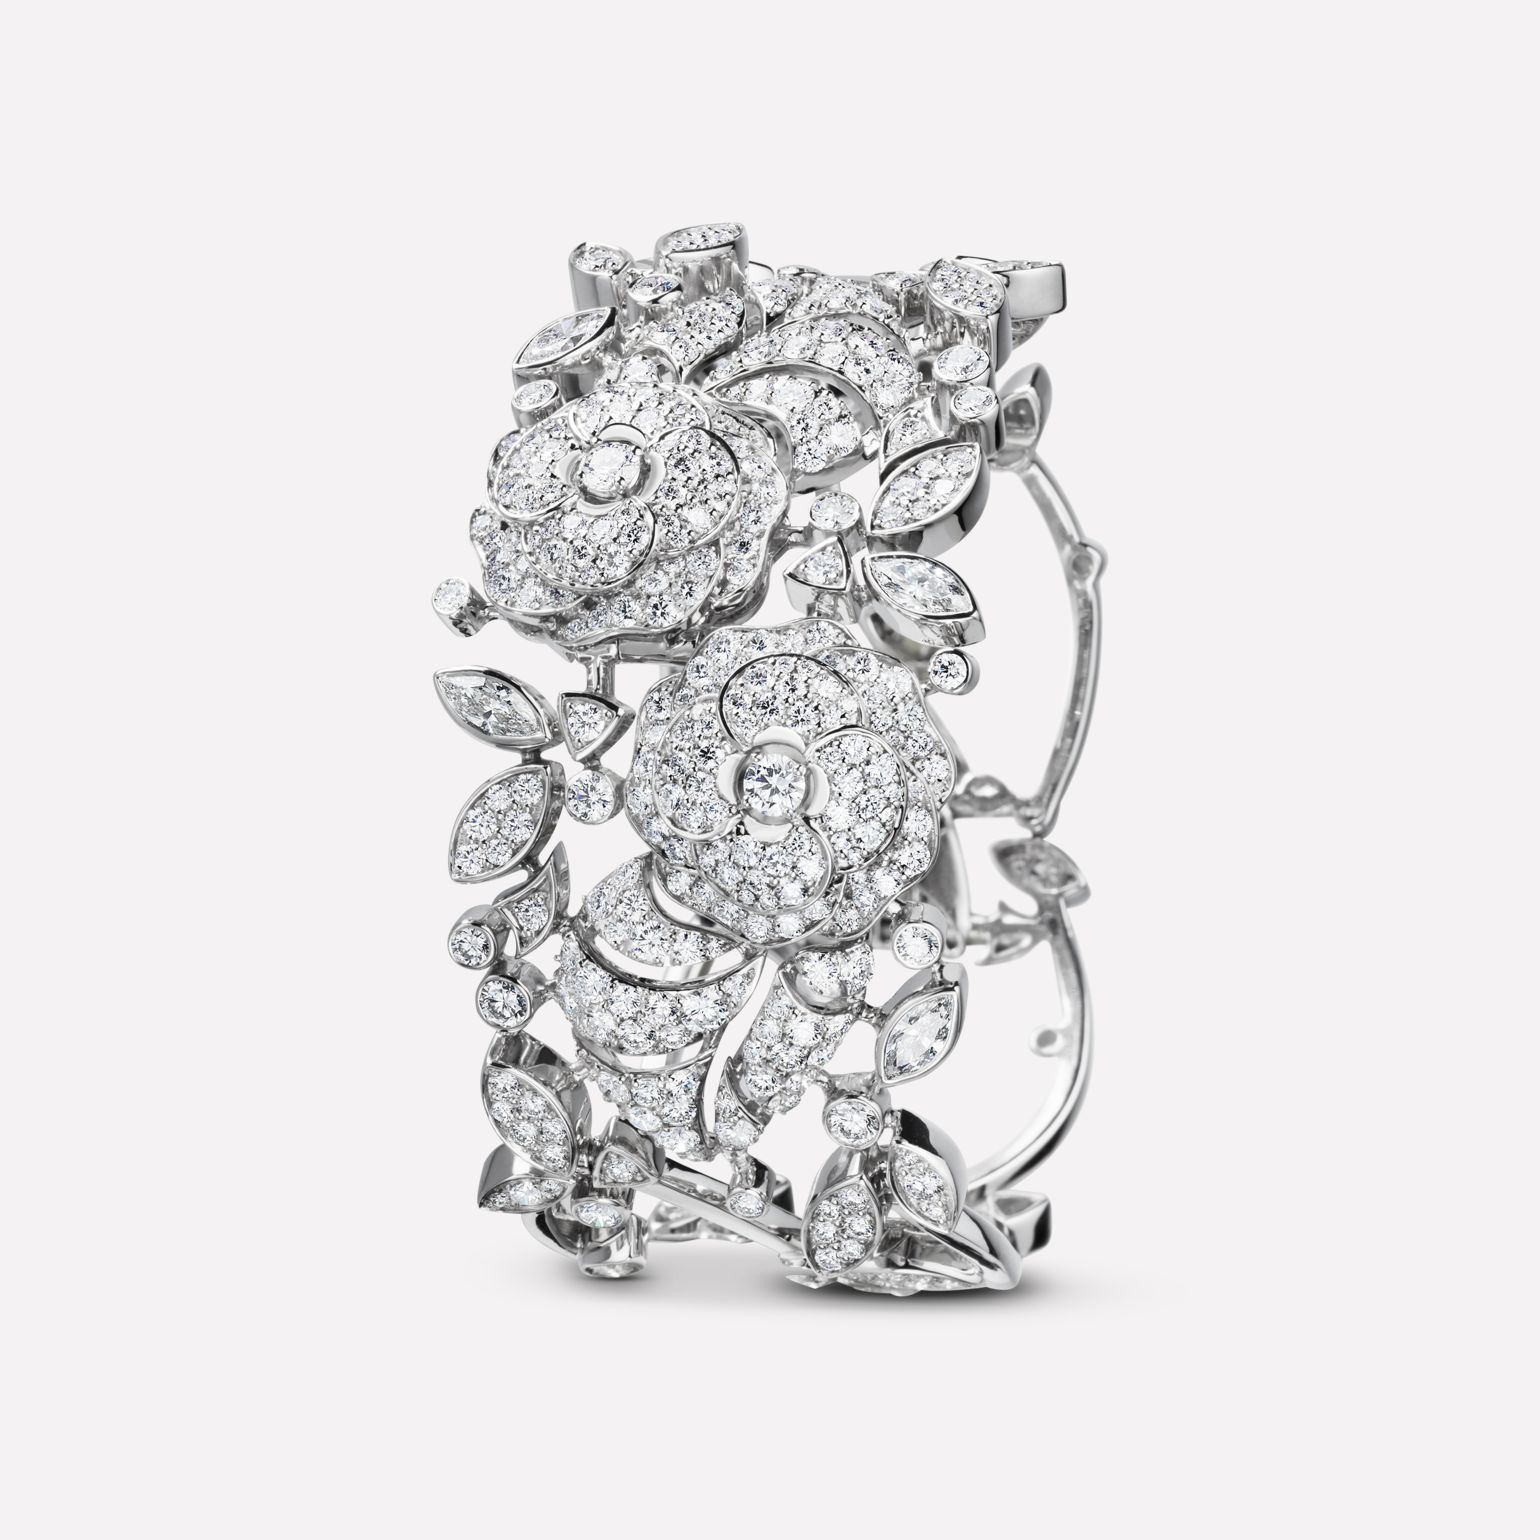 Camélia Bracelet Camélia bouquet necklace in 18K white gold, diamonds and central diamond